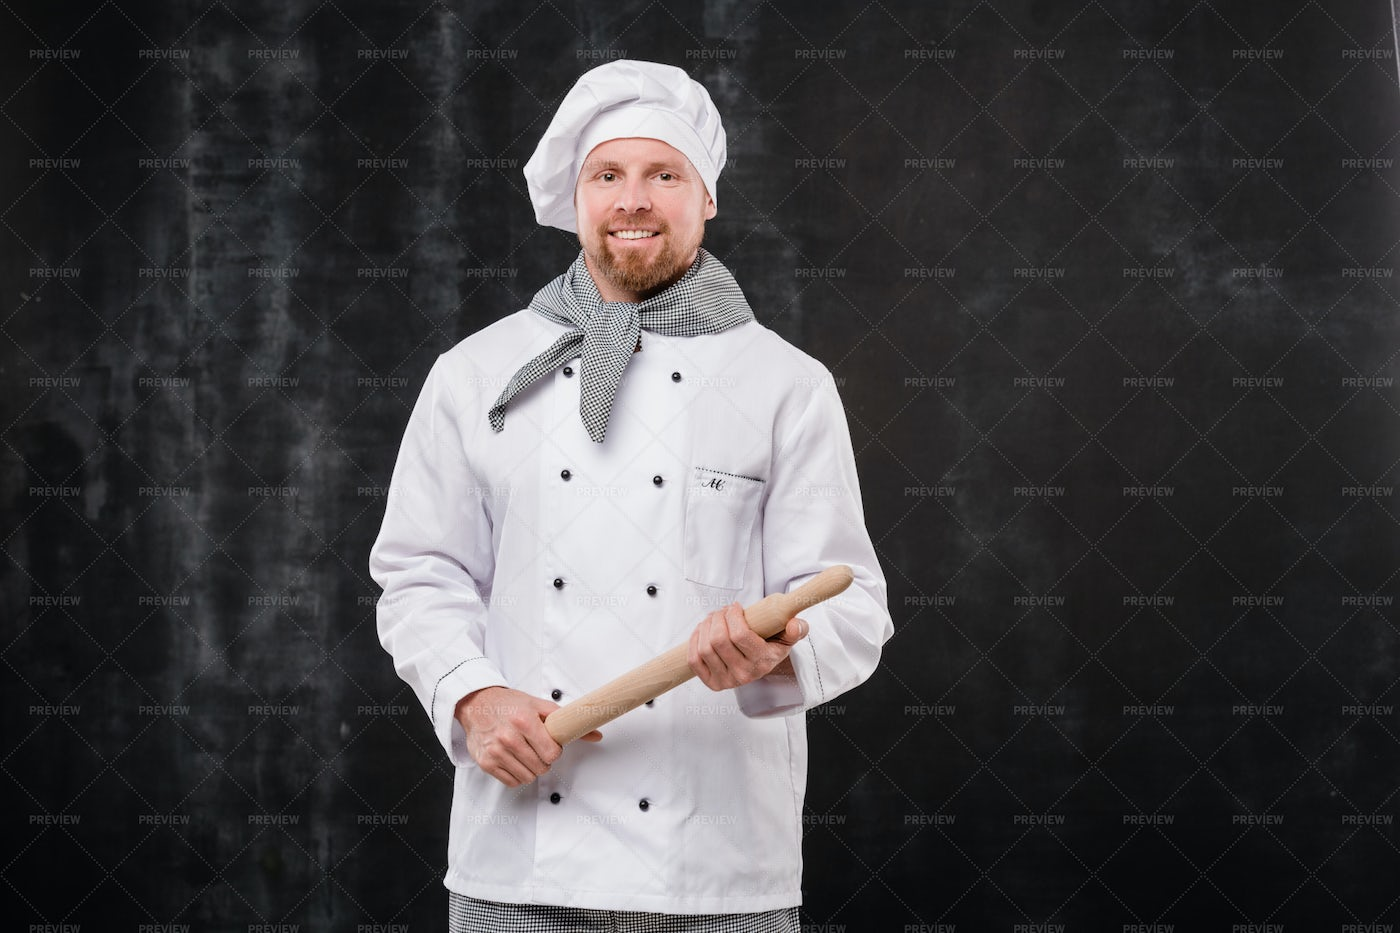 Young Smiling Bearded Chef In White...: Stock Photos